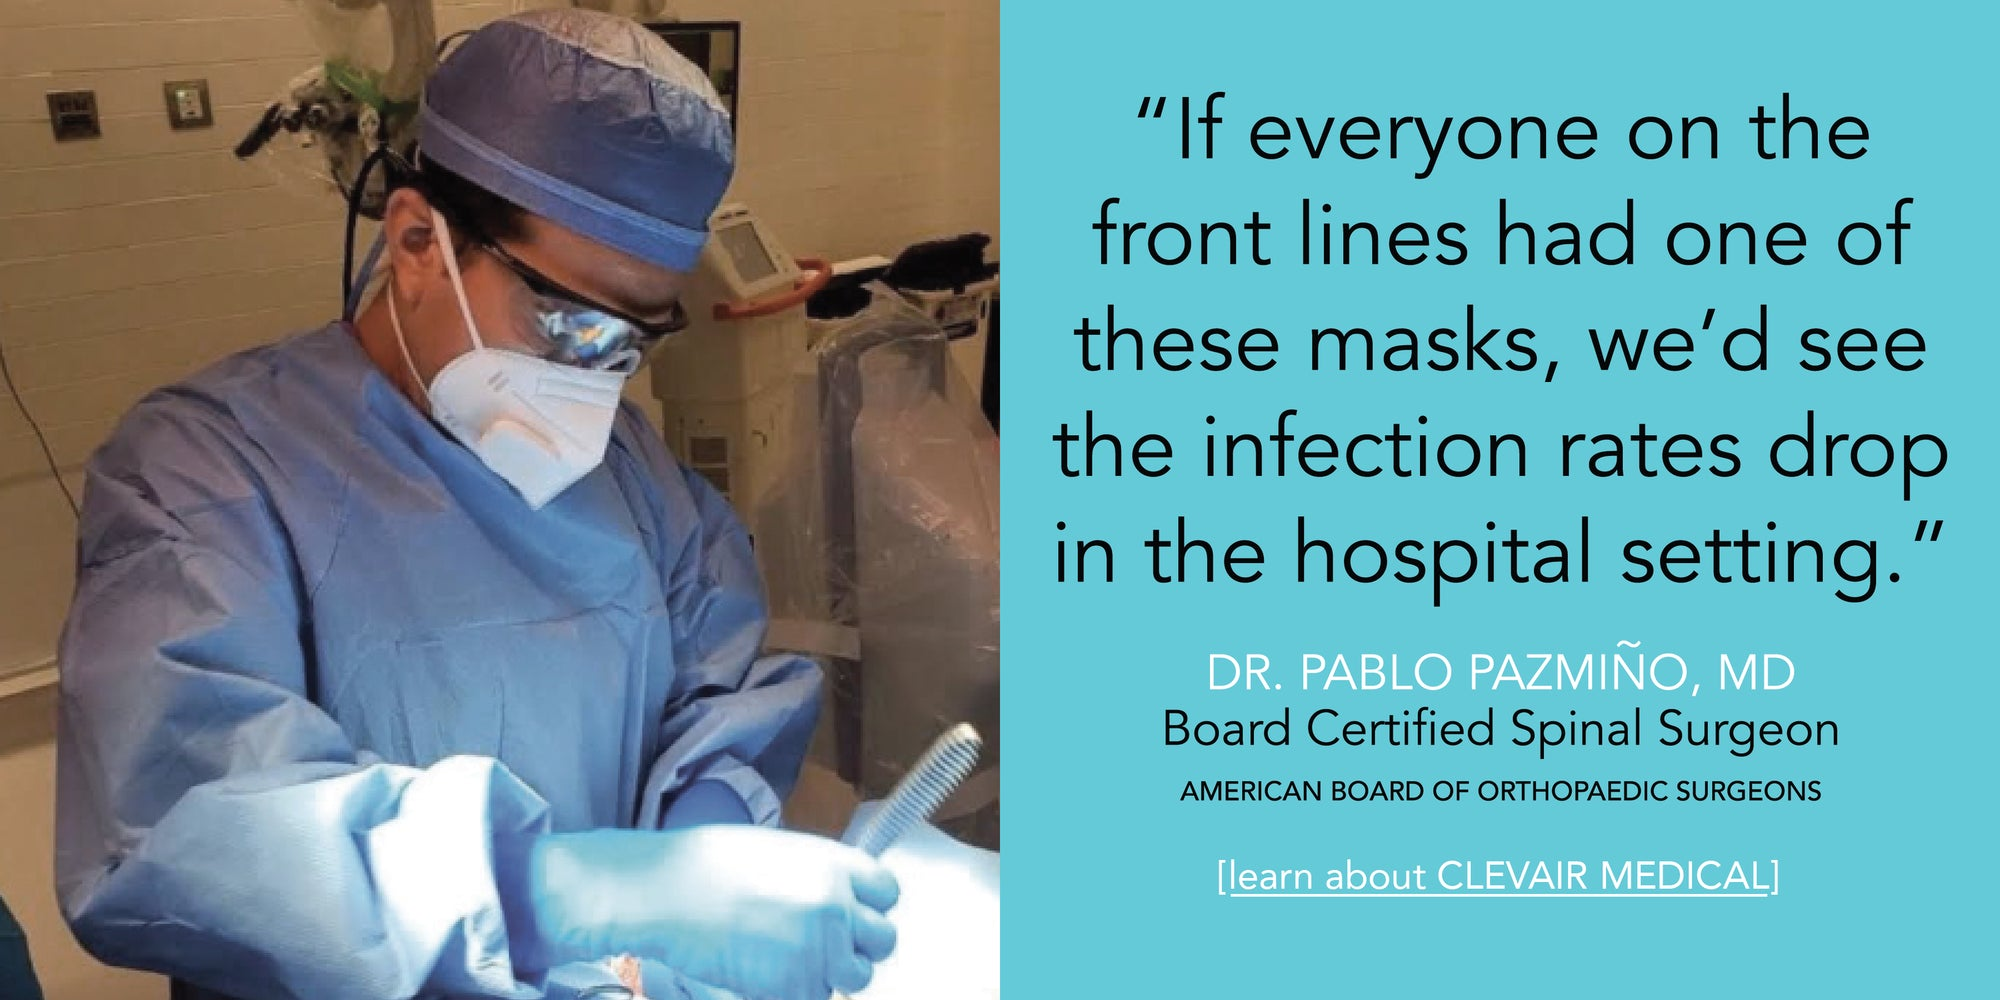 """If everyone on the front lines had one of these masks, we'd see the infection rates drop in the hospital setting."" - Dr Pablo Pazmiño, MD Certified Orthopaedic Surgeon, American Board of Orthopaedic Surgeons, SpineCal Santa Monica, California"